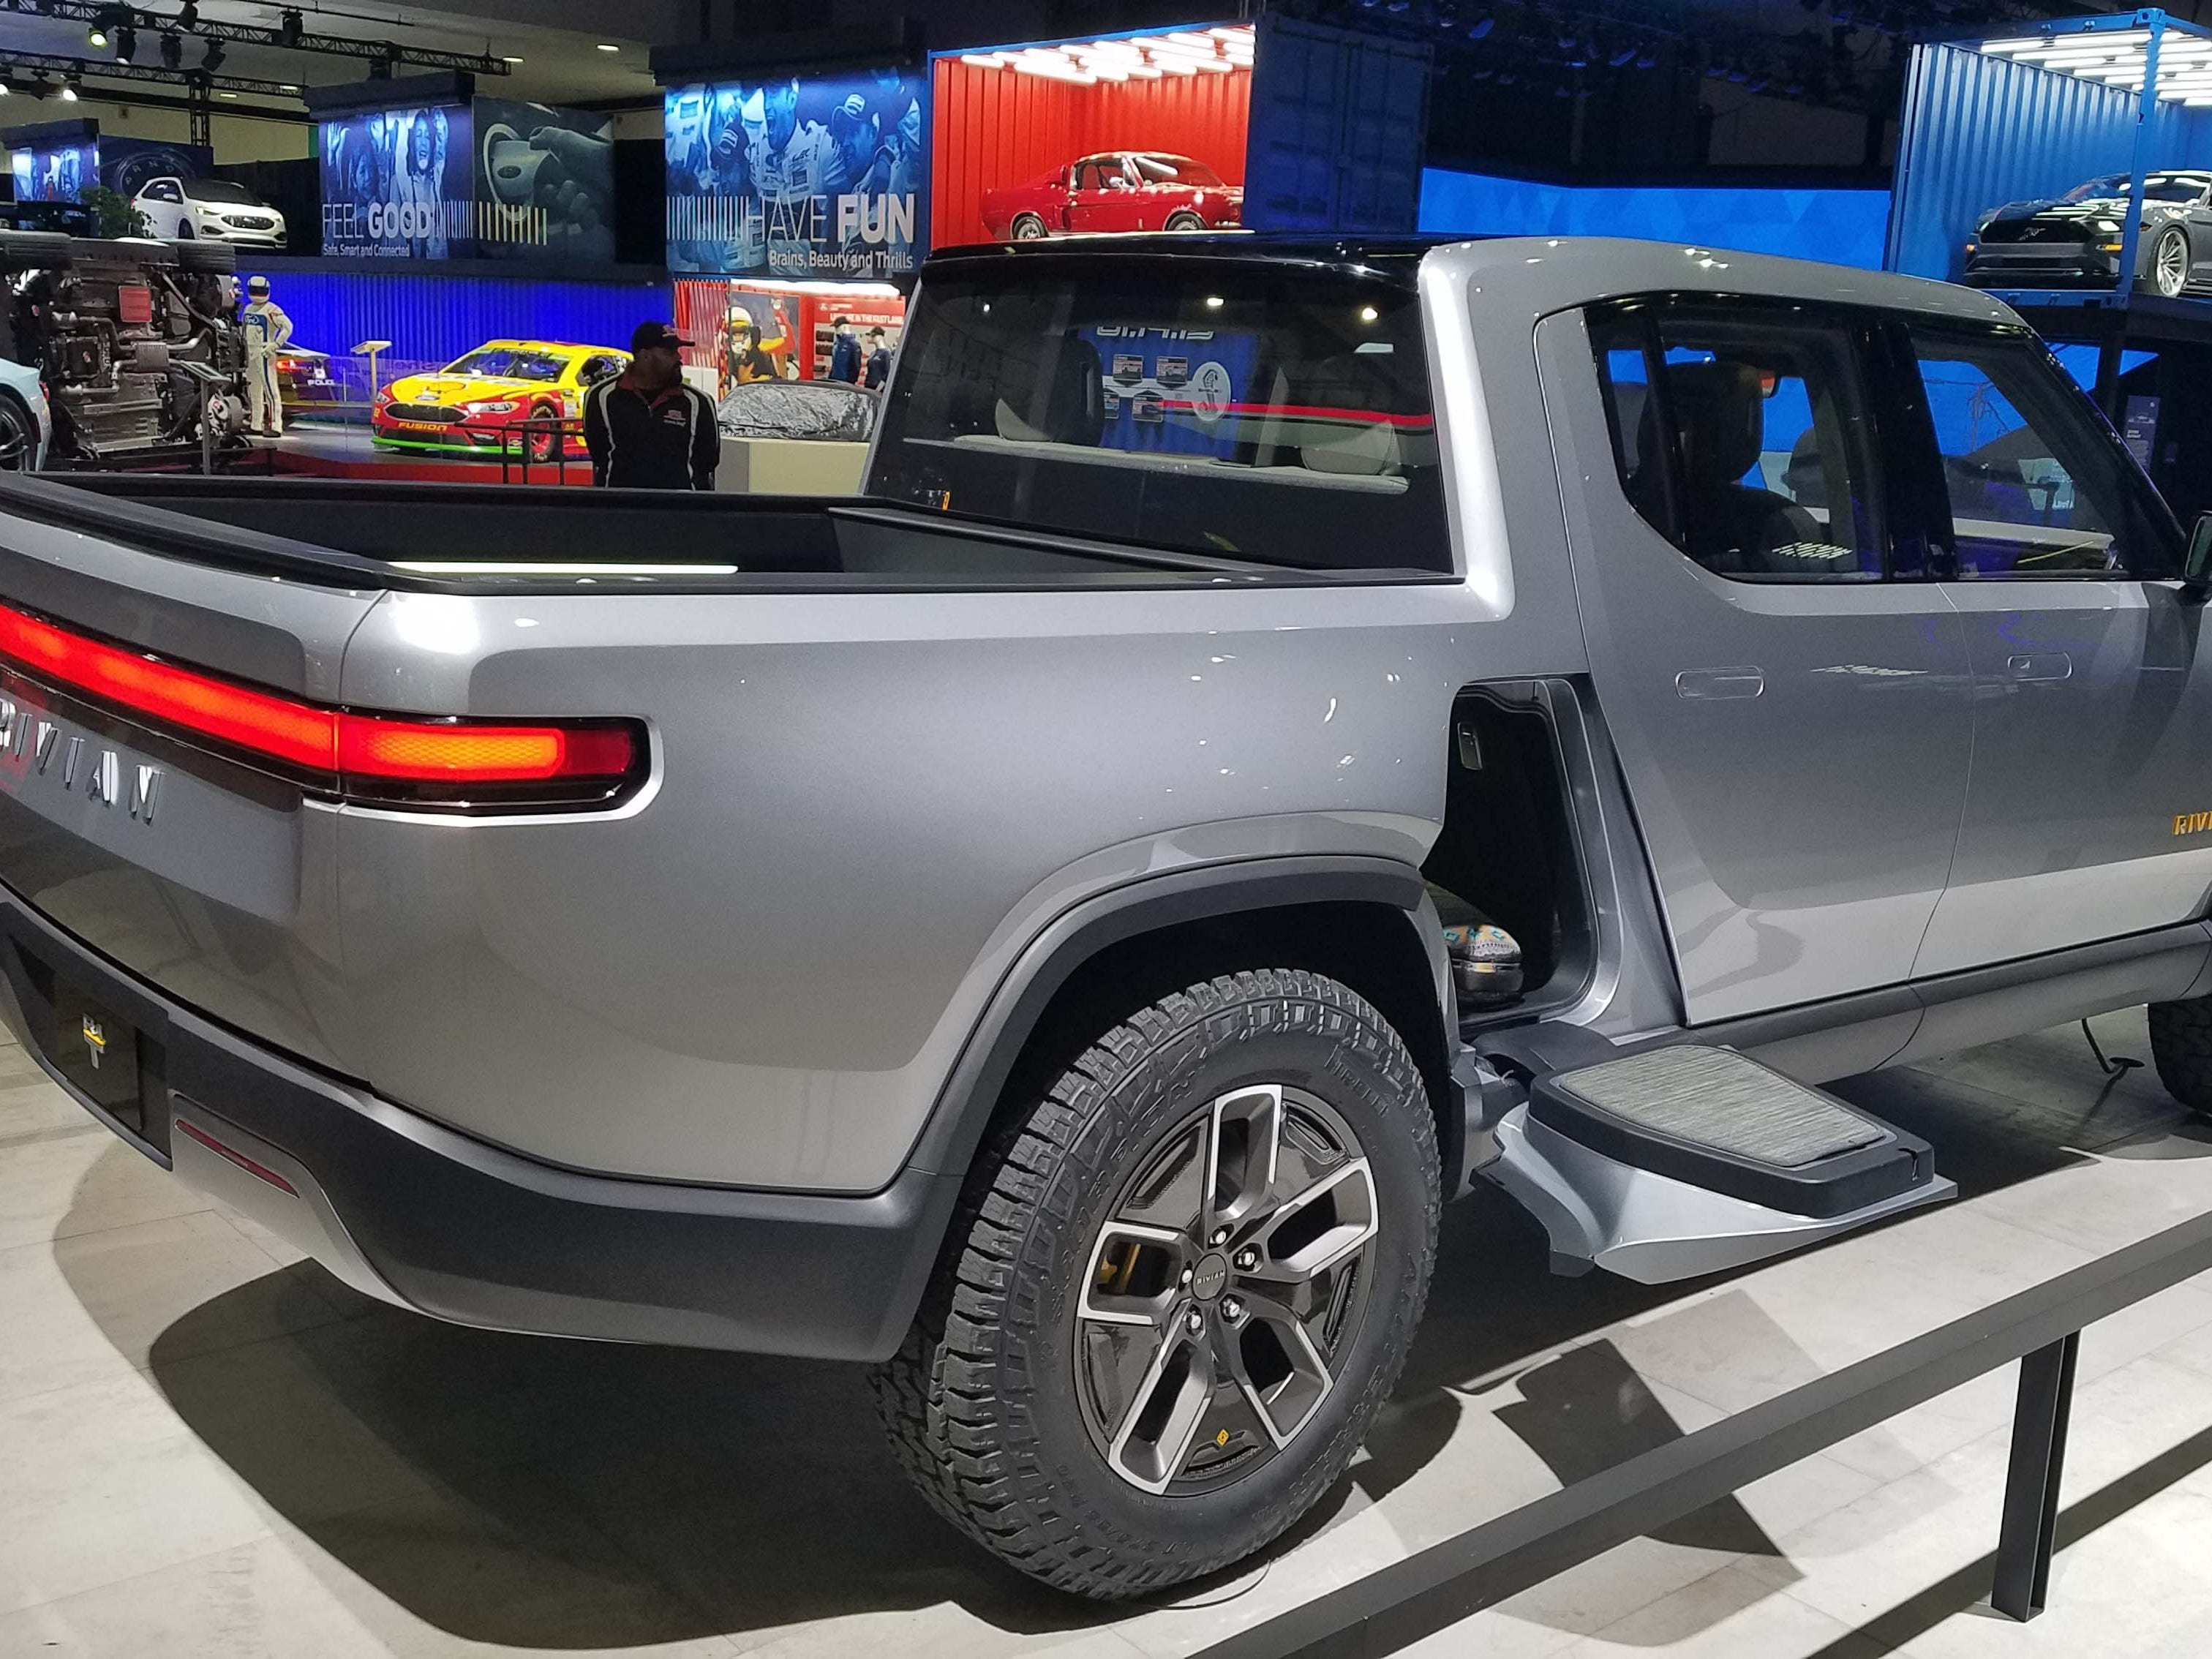 The Rivian pickup packs up 400 miles of range, sports neat tweaks like a side seat, and can carry cargo in its front frunk.